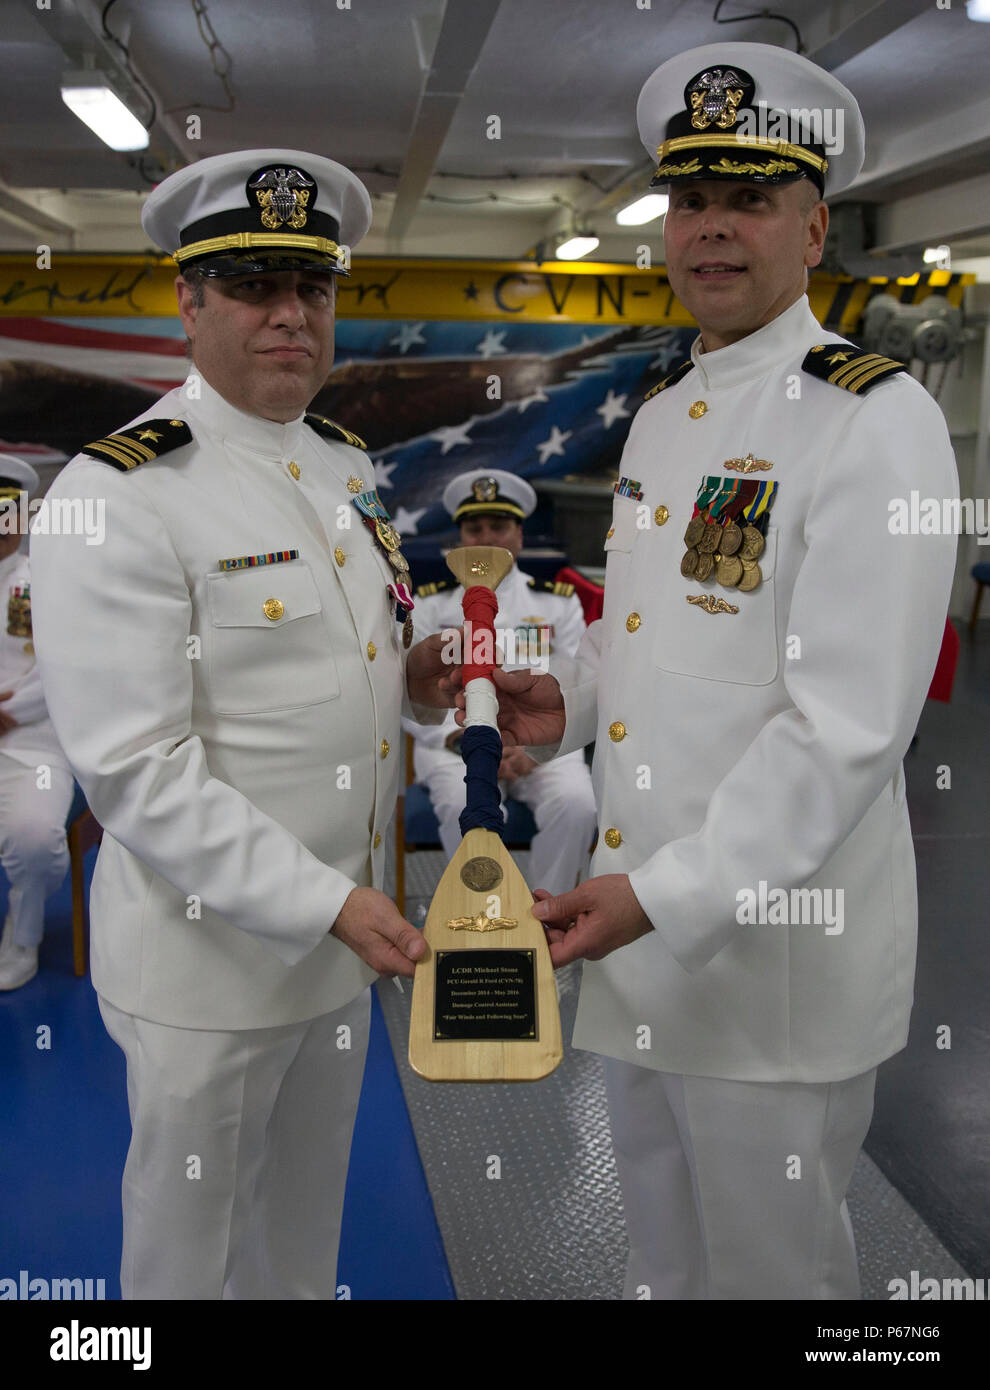 NEWPORT NEWS, Va. (May 13, 2016) -- Lt. Cmdr. Michael Stone, assigned to Pre-Commissioning Unit Gerald R. Ford (CVN 78), is presented with an oar by Cmdr. Allan Feenstra, chief engineer, during a retirement ceremony in the ship's forecastle. Ford is the first of a new class of aircraft carriers currently under construction by Huntington Ingalls Industries Newport News Shipbuilding.  (U.S. Navy photo by Mass Communication Specialist Seaman Apprentice Connor Loessin/Released) - Stock Image